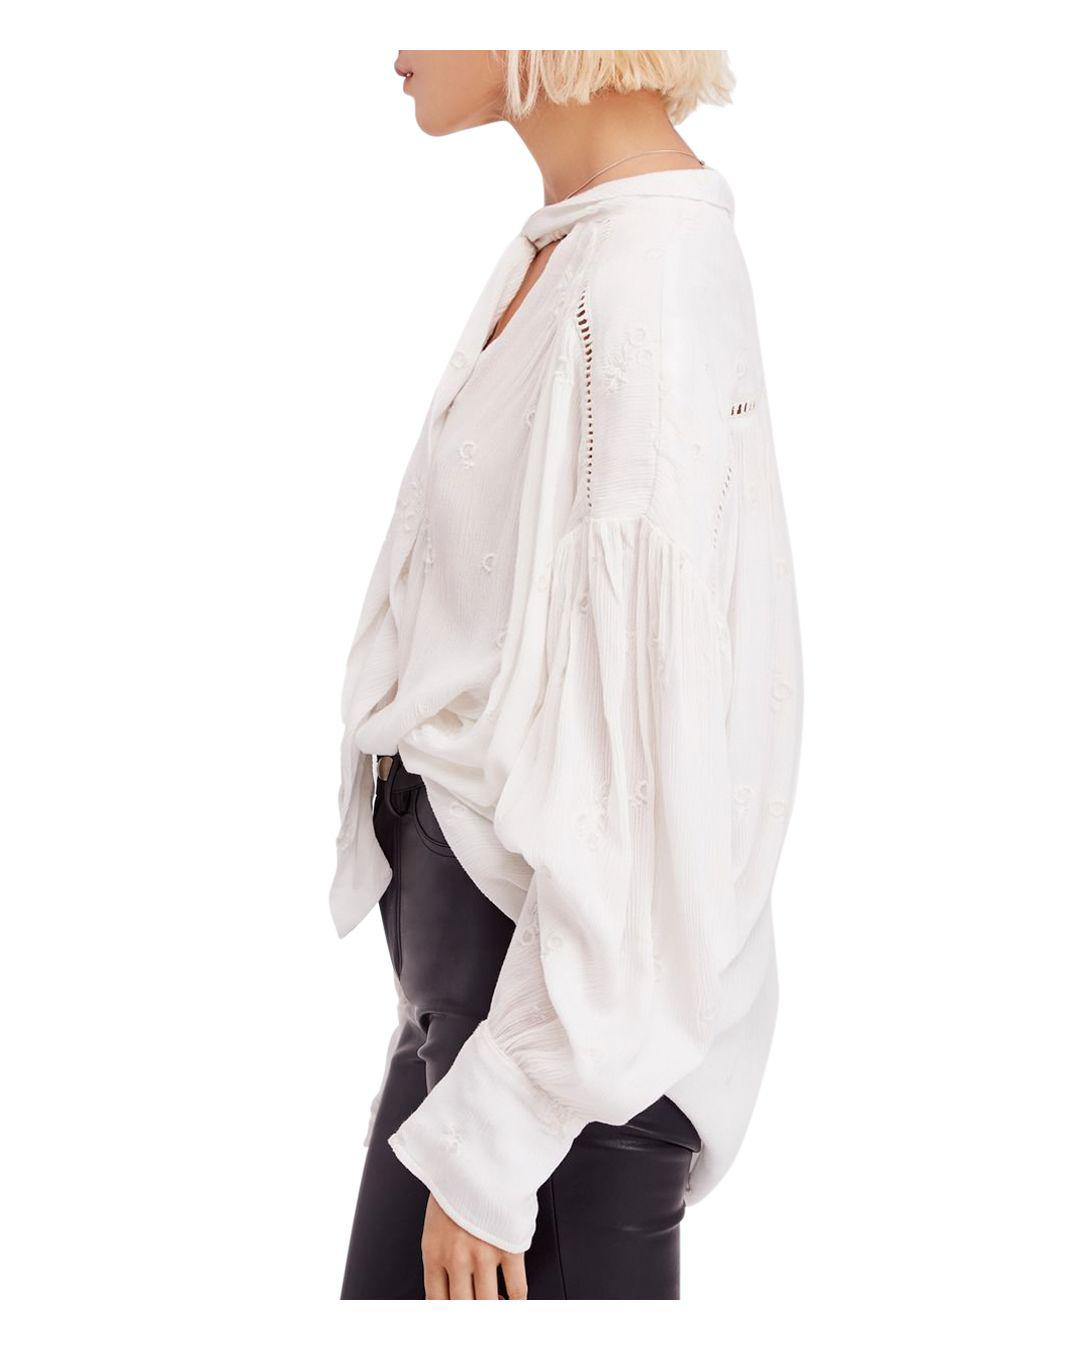 34e9a6077b7779 Free People Wishful Moments Tie-neck Blouse in White - Lyst